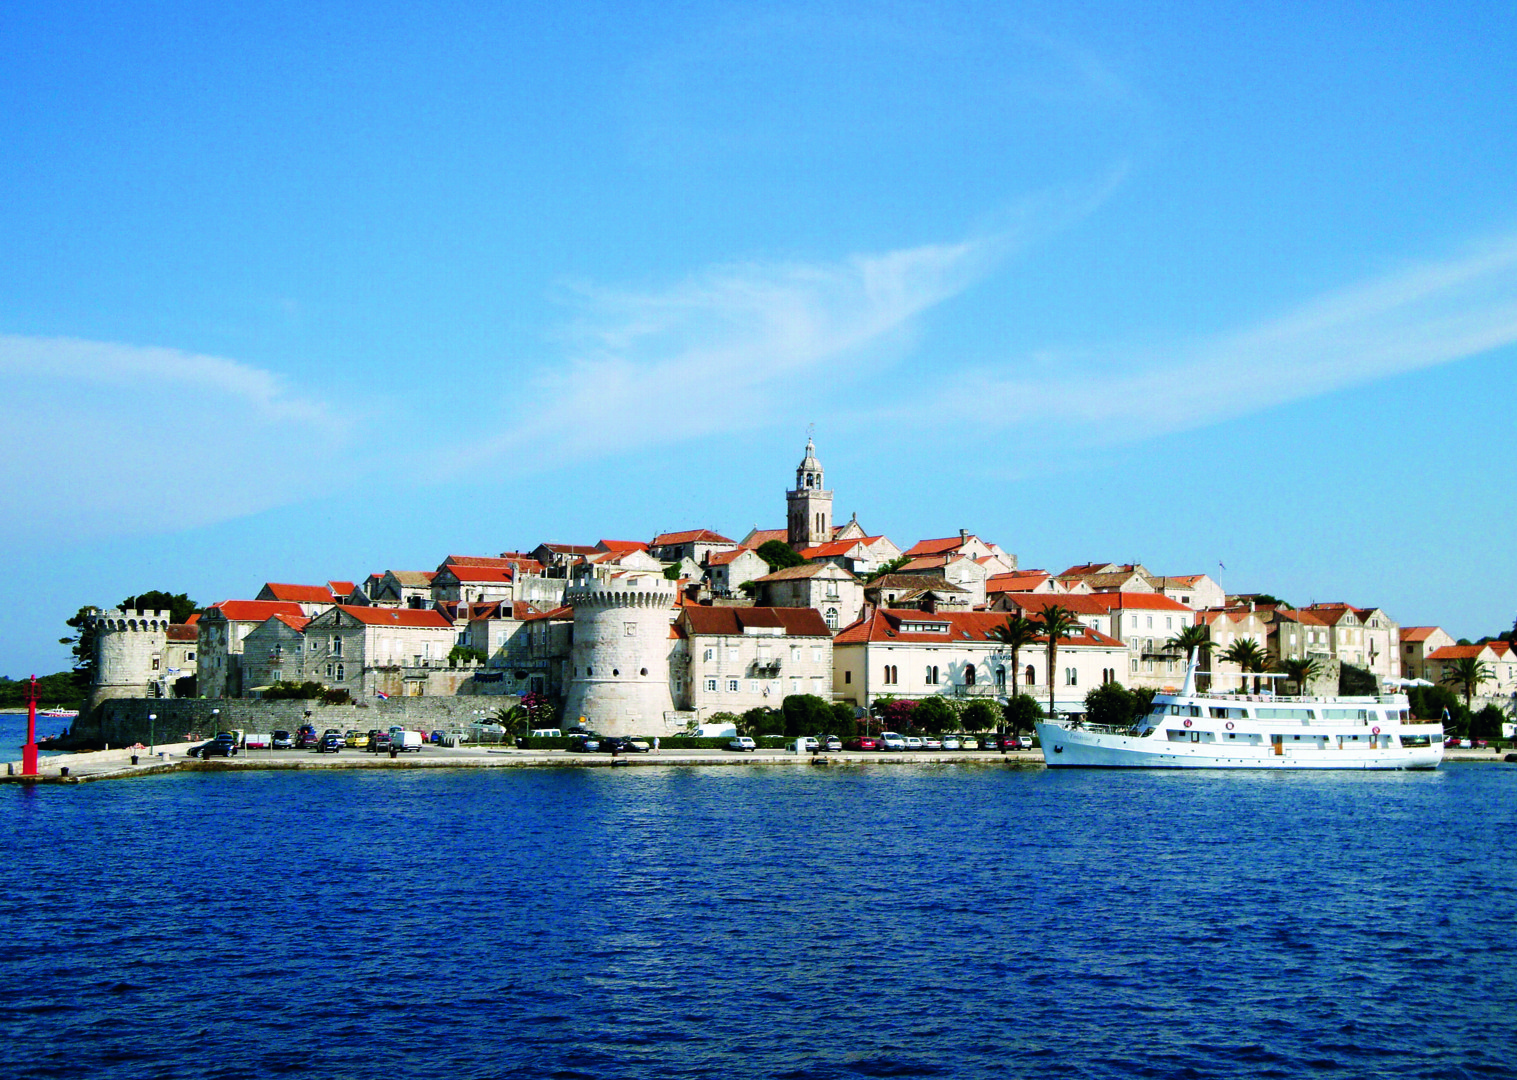 experience-mixture-of-cultures-cycling-holiday.jpg - Croatia - Southern Dalmatia - Bike and Boat Holiday - Leisure Cycling